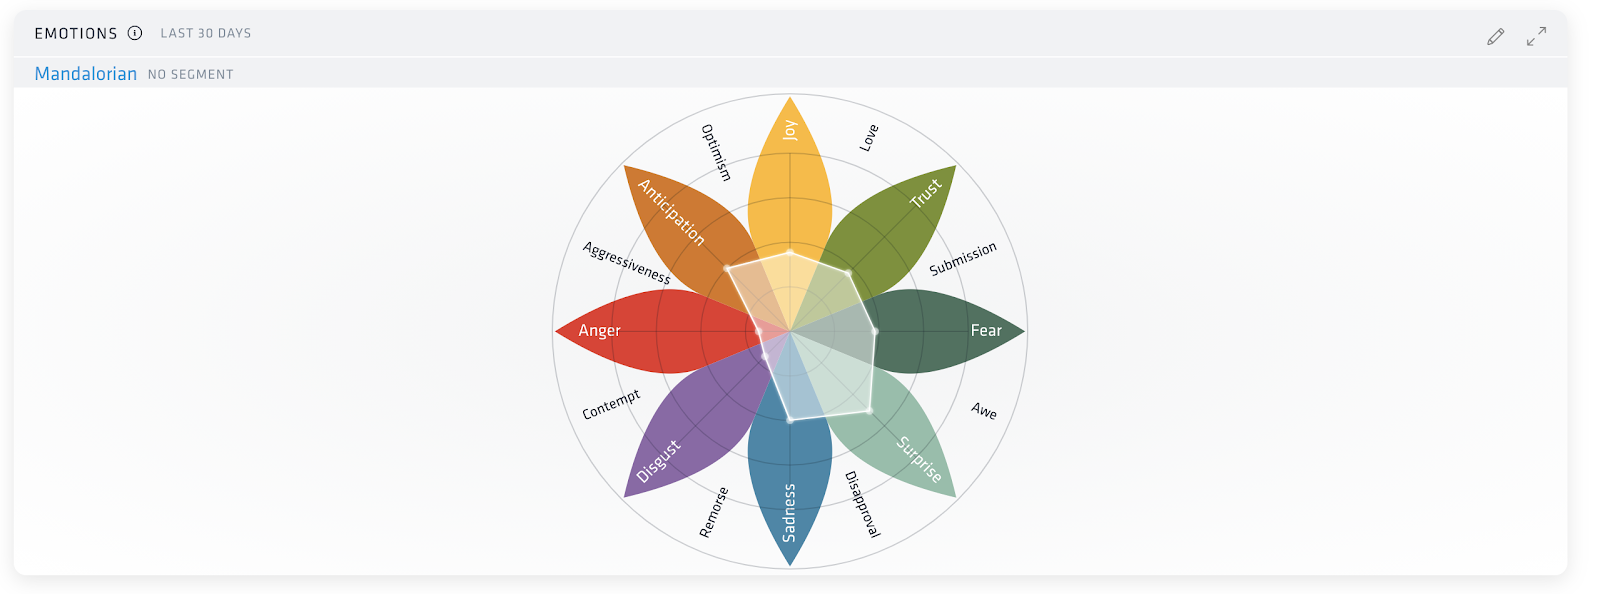 Nuvi social analytics dashboard analyzes eight emotions: Joy, trust, fear, surprise, sadness, disgust, anger, and anticipation. This graph shows surprise to be the highest ranking, then sadness, fear, trust, joy and anticipation are all around the same level and have high rankings.